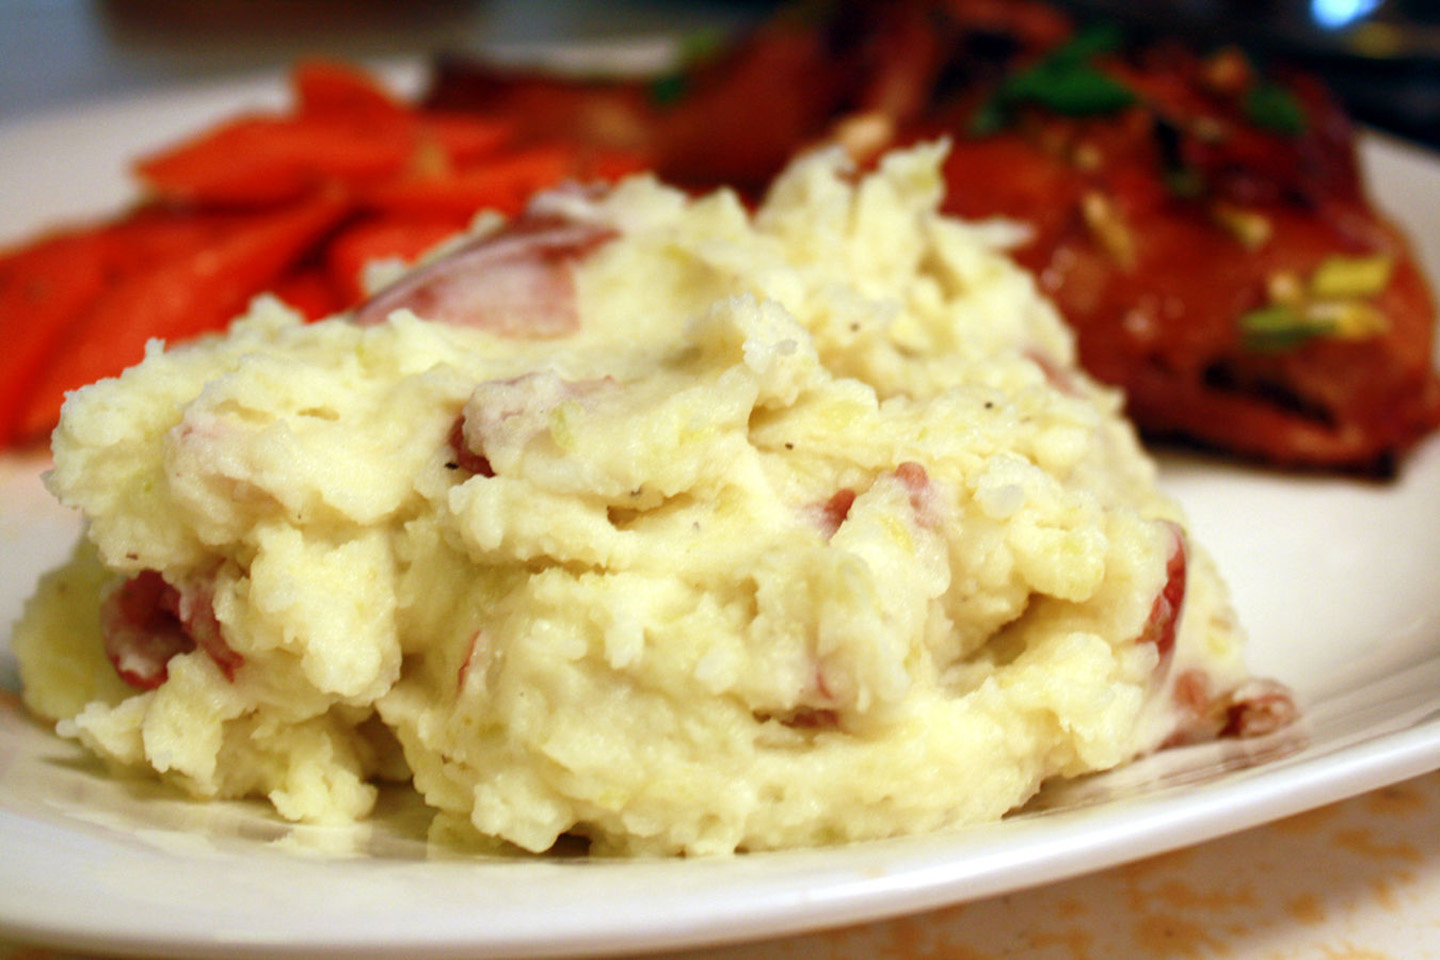 plate of mashed red potatoes